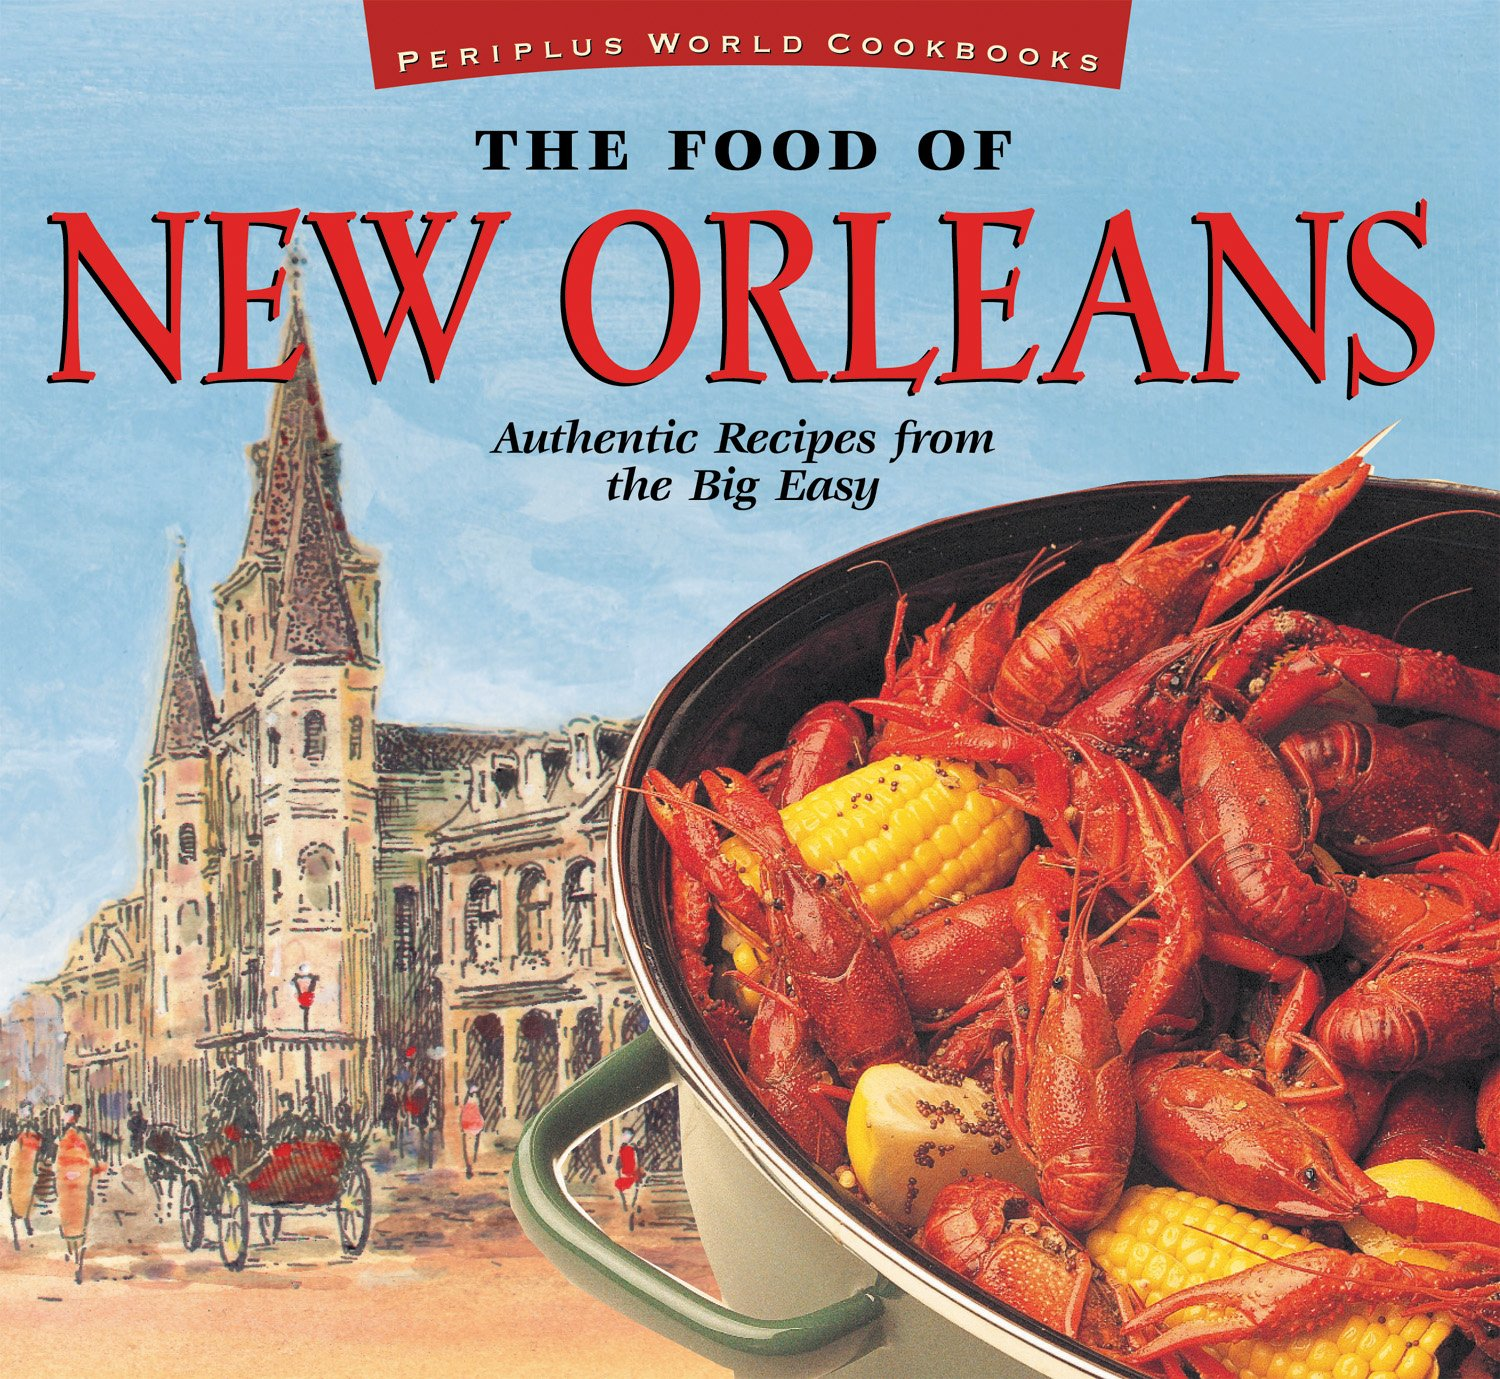 The food of new orleans authentic recipes from the big easy cajun the food of new orleans authentic recipes from the big easy cajun creole cookbook over 80 recipes food of the world cookbooks john demers forumfinder Images